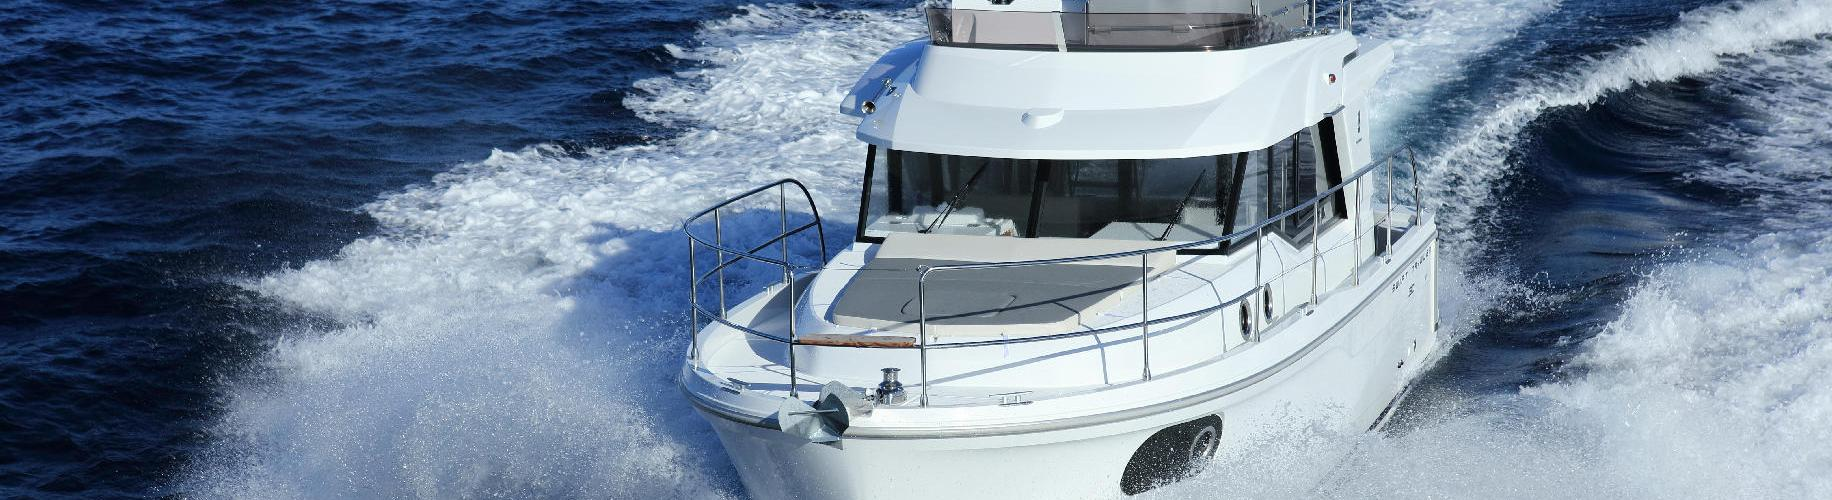 motorni brod Swift Trawler 30